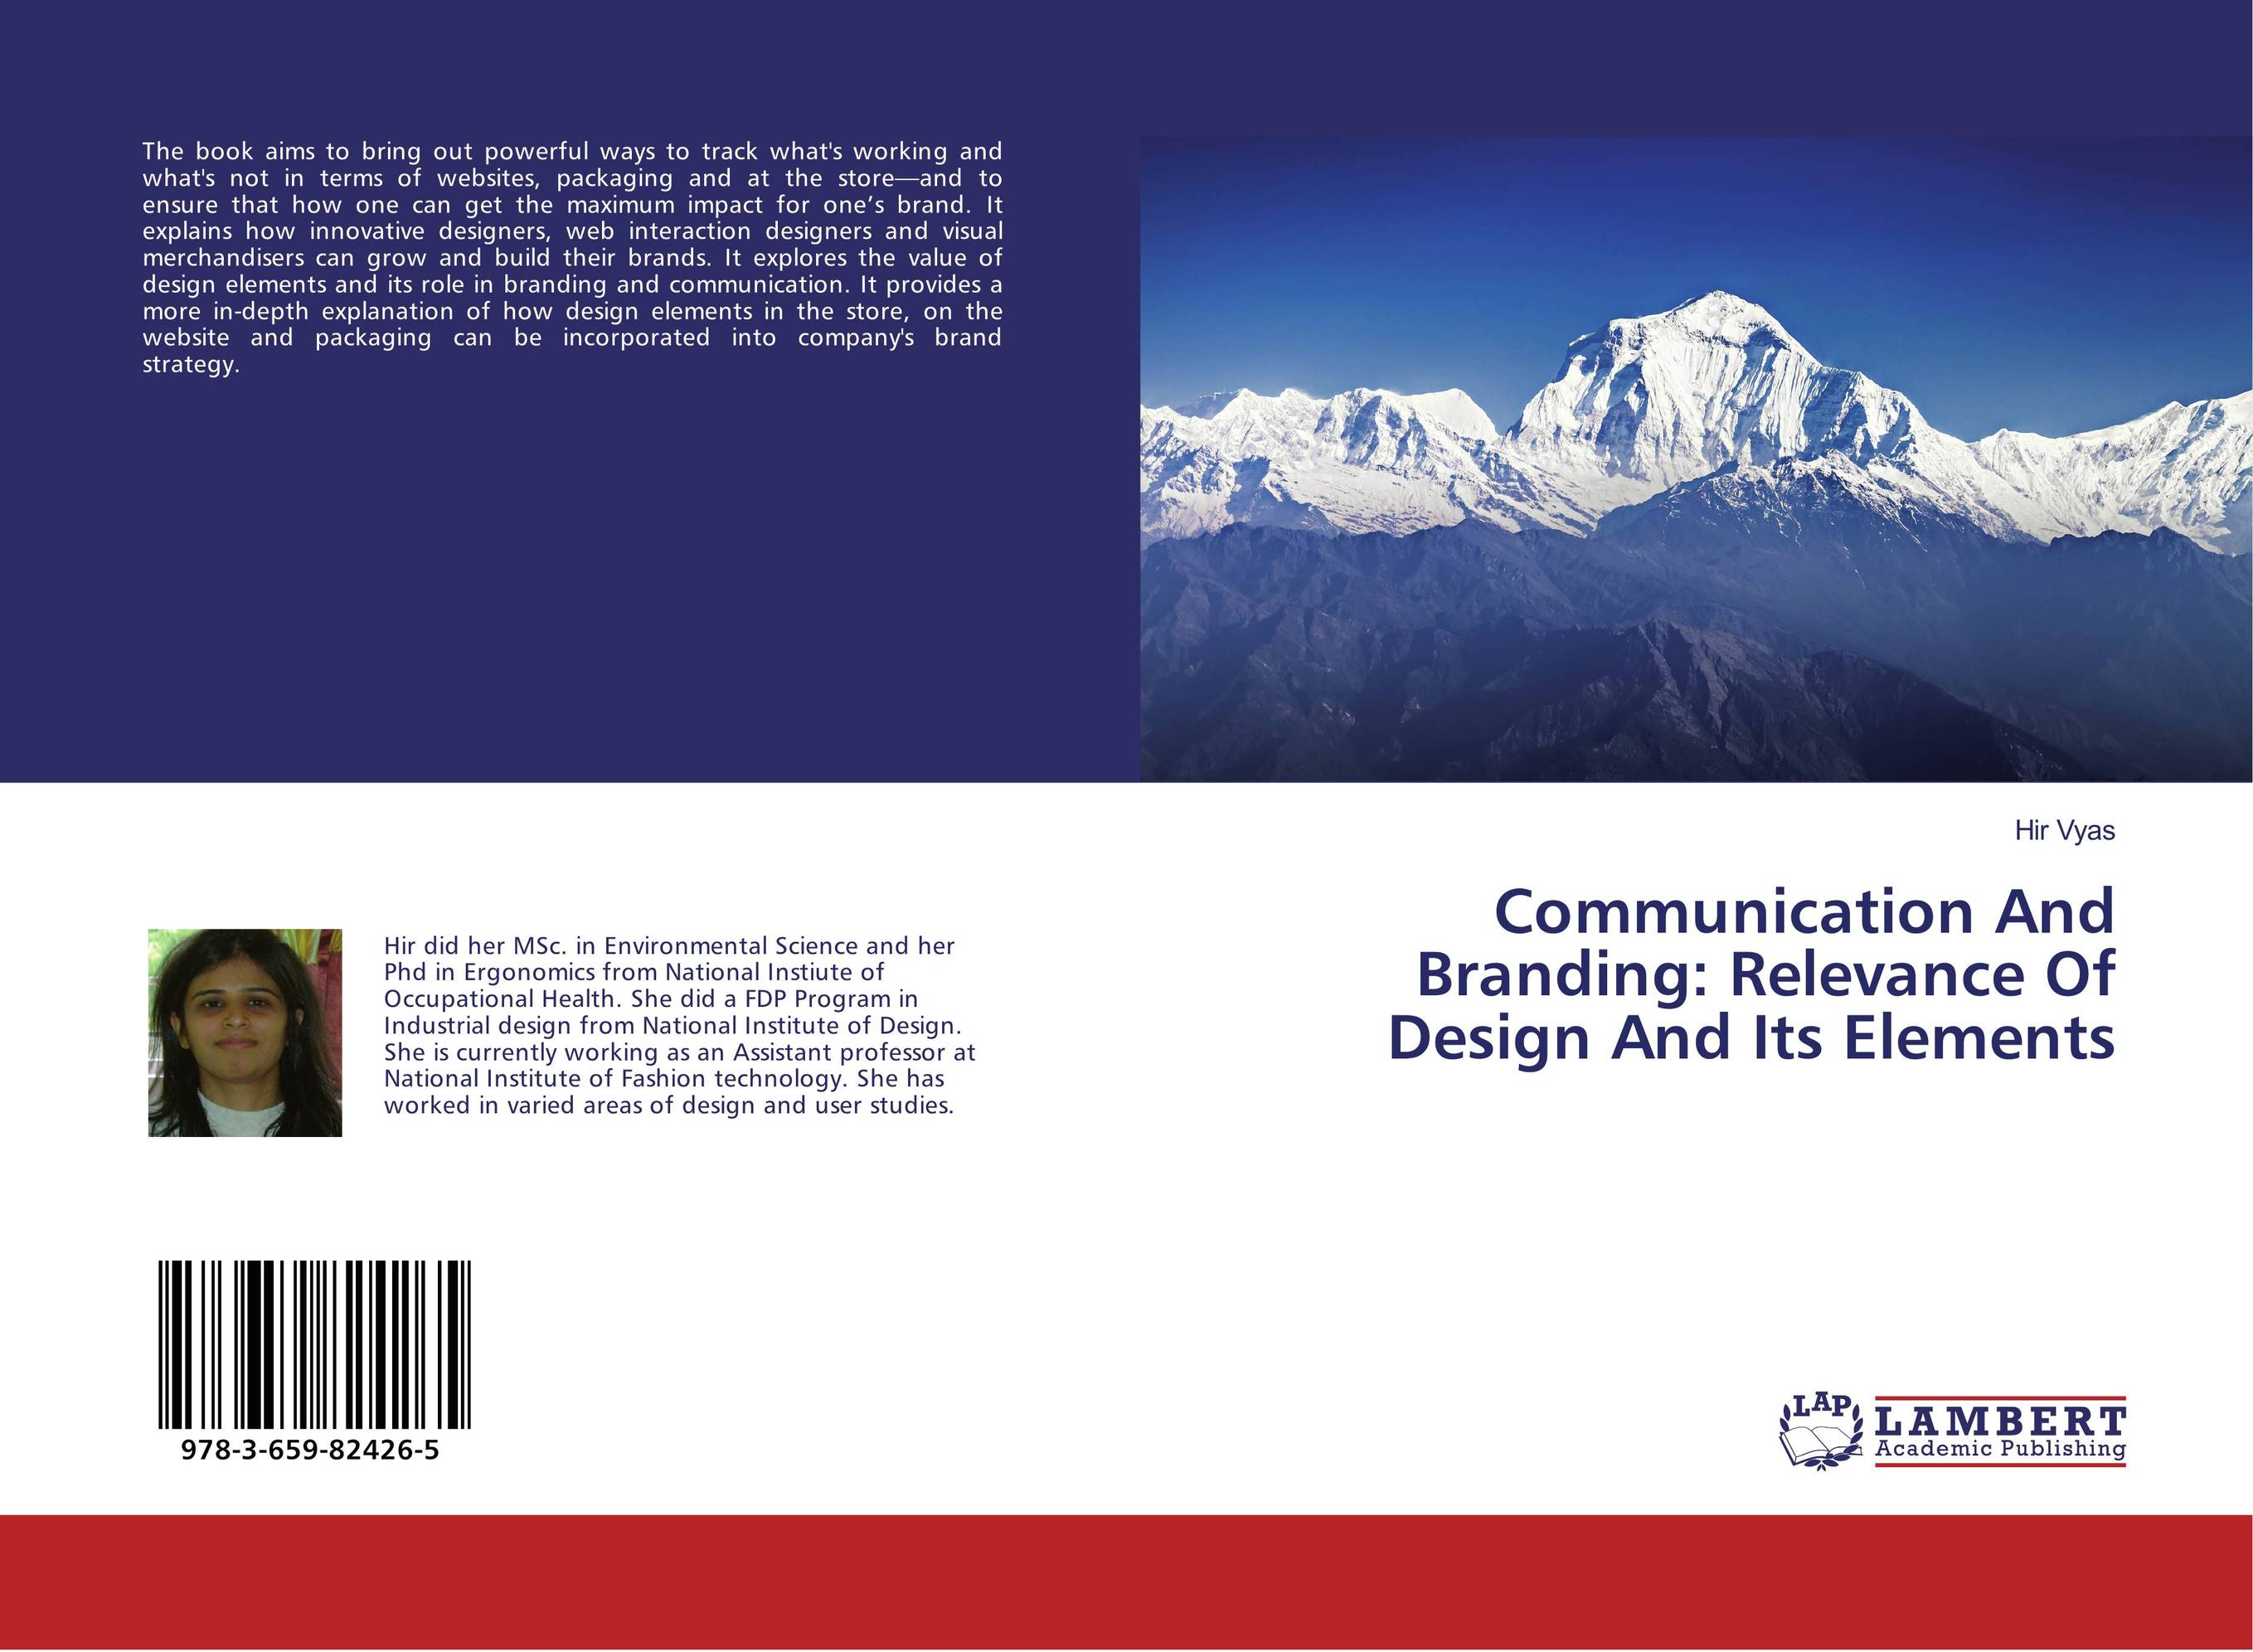 Communication And Branding: Relevance Of Design And Its Elements